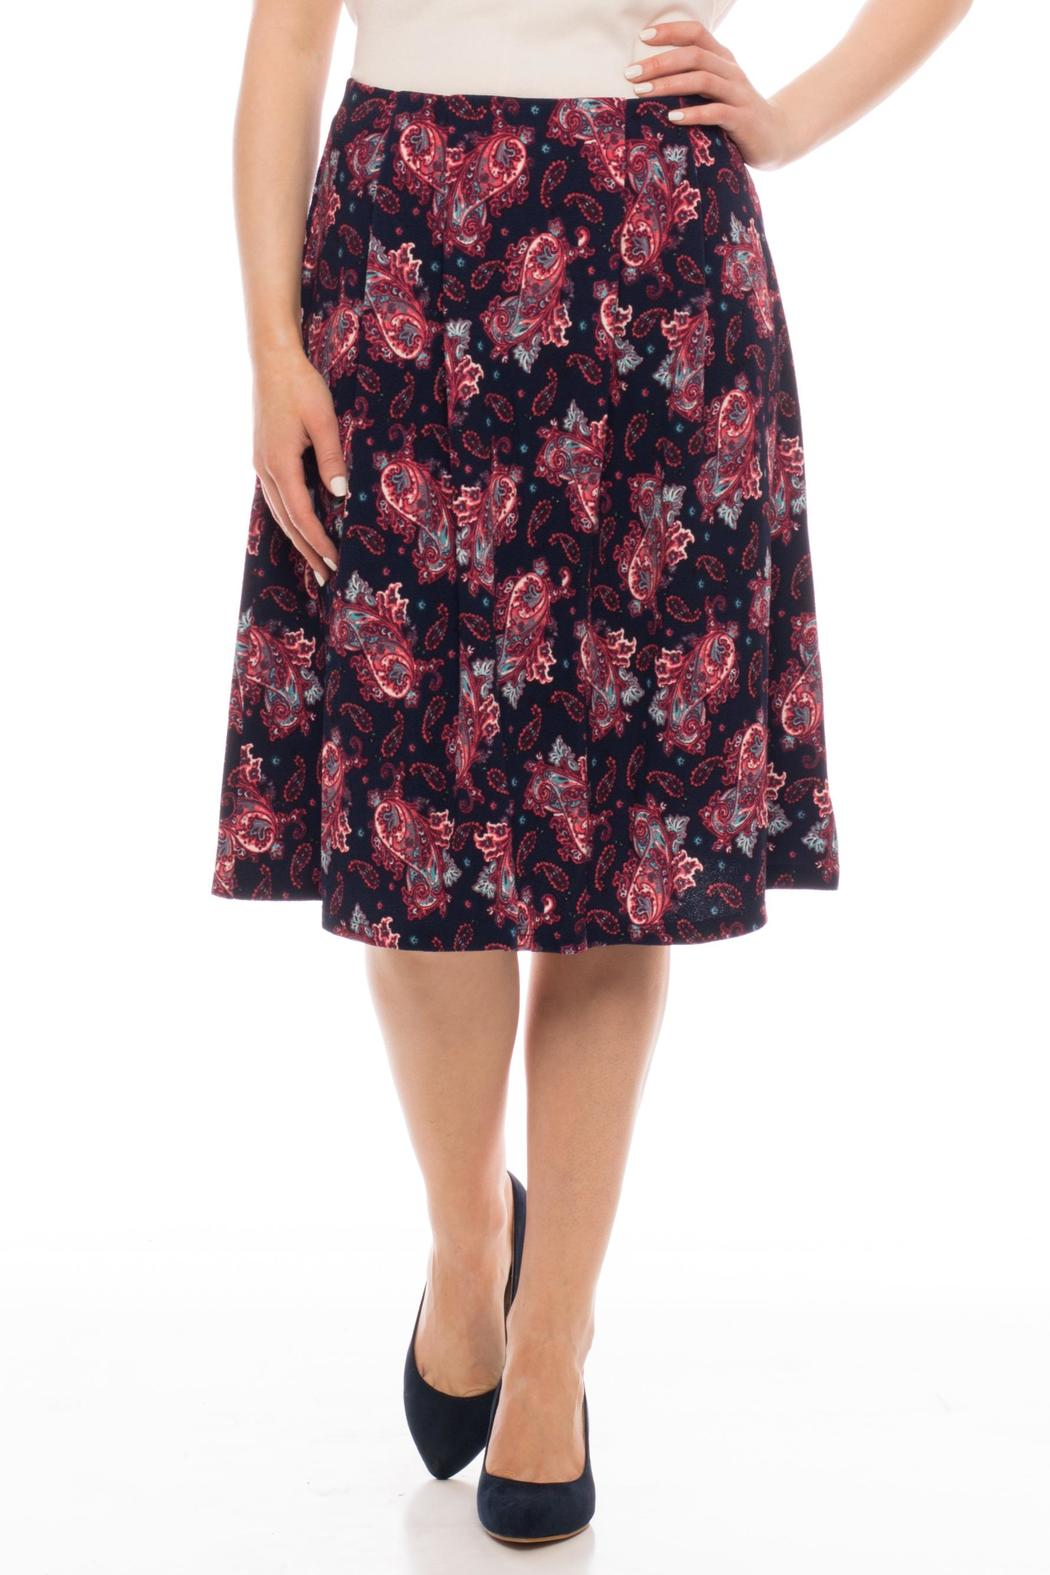 in style navy paisley pleated skirt from kansas by